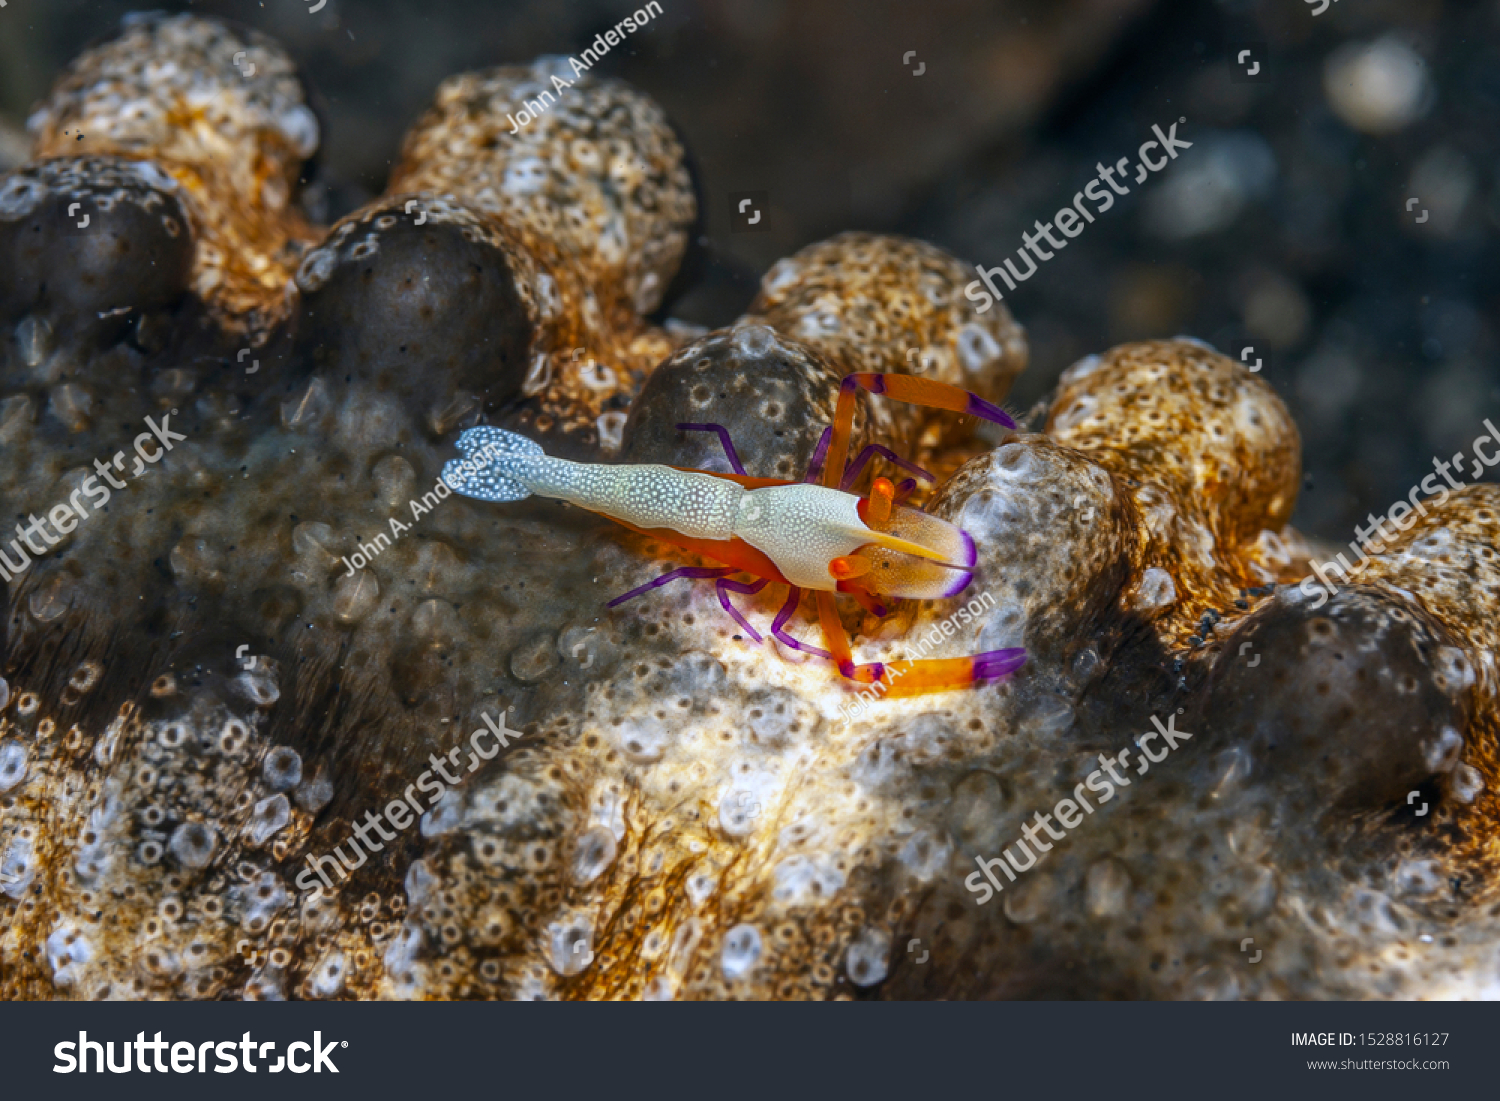 Periclimenes imperator, known as the emperor shrimp, is a organism of shrimp with a wide distribution across the Indo-Pacific #1528816127